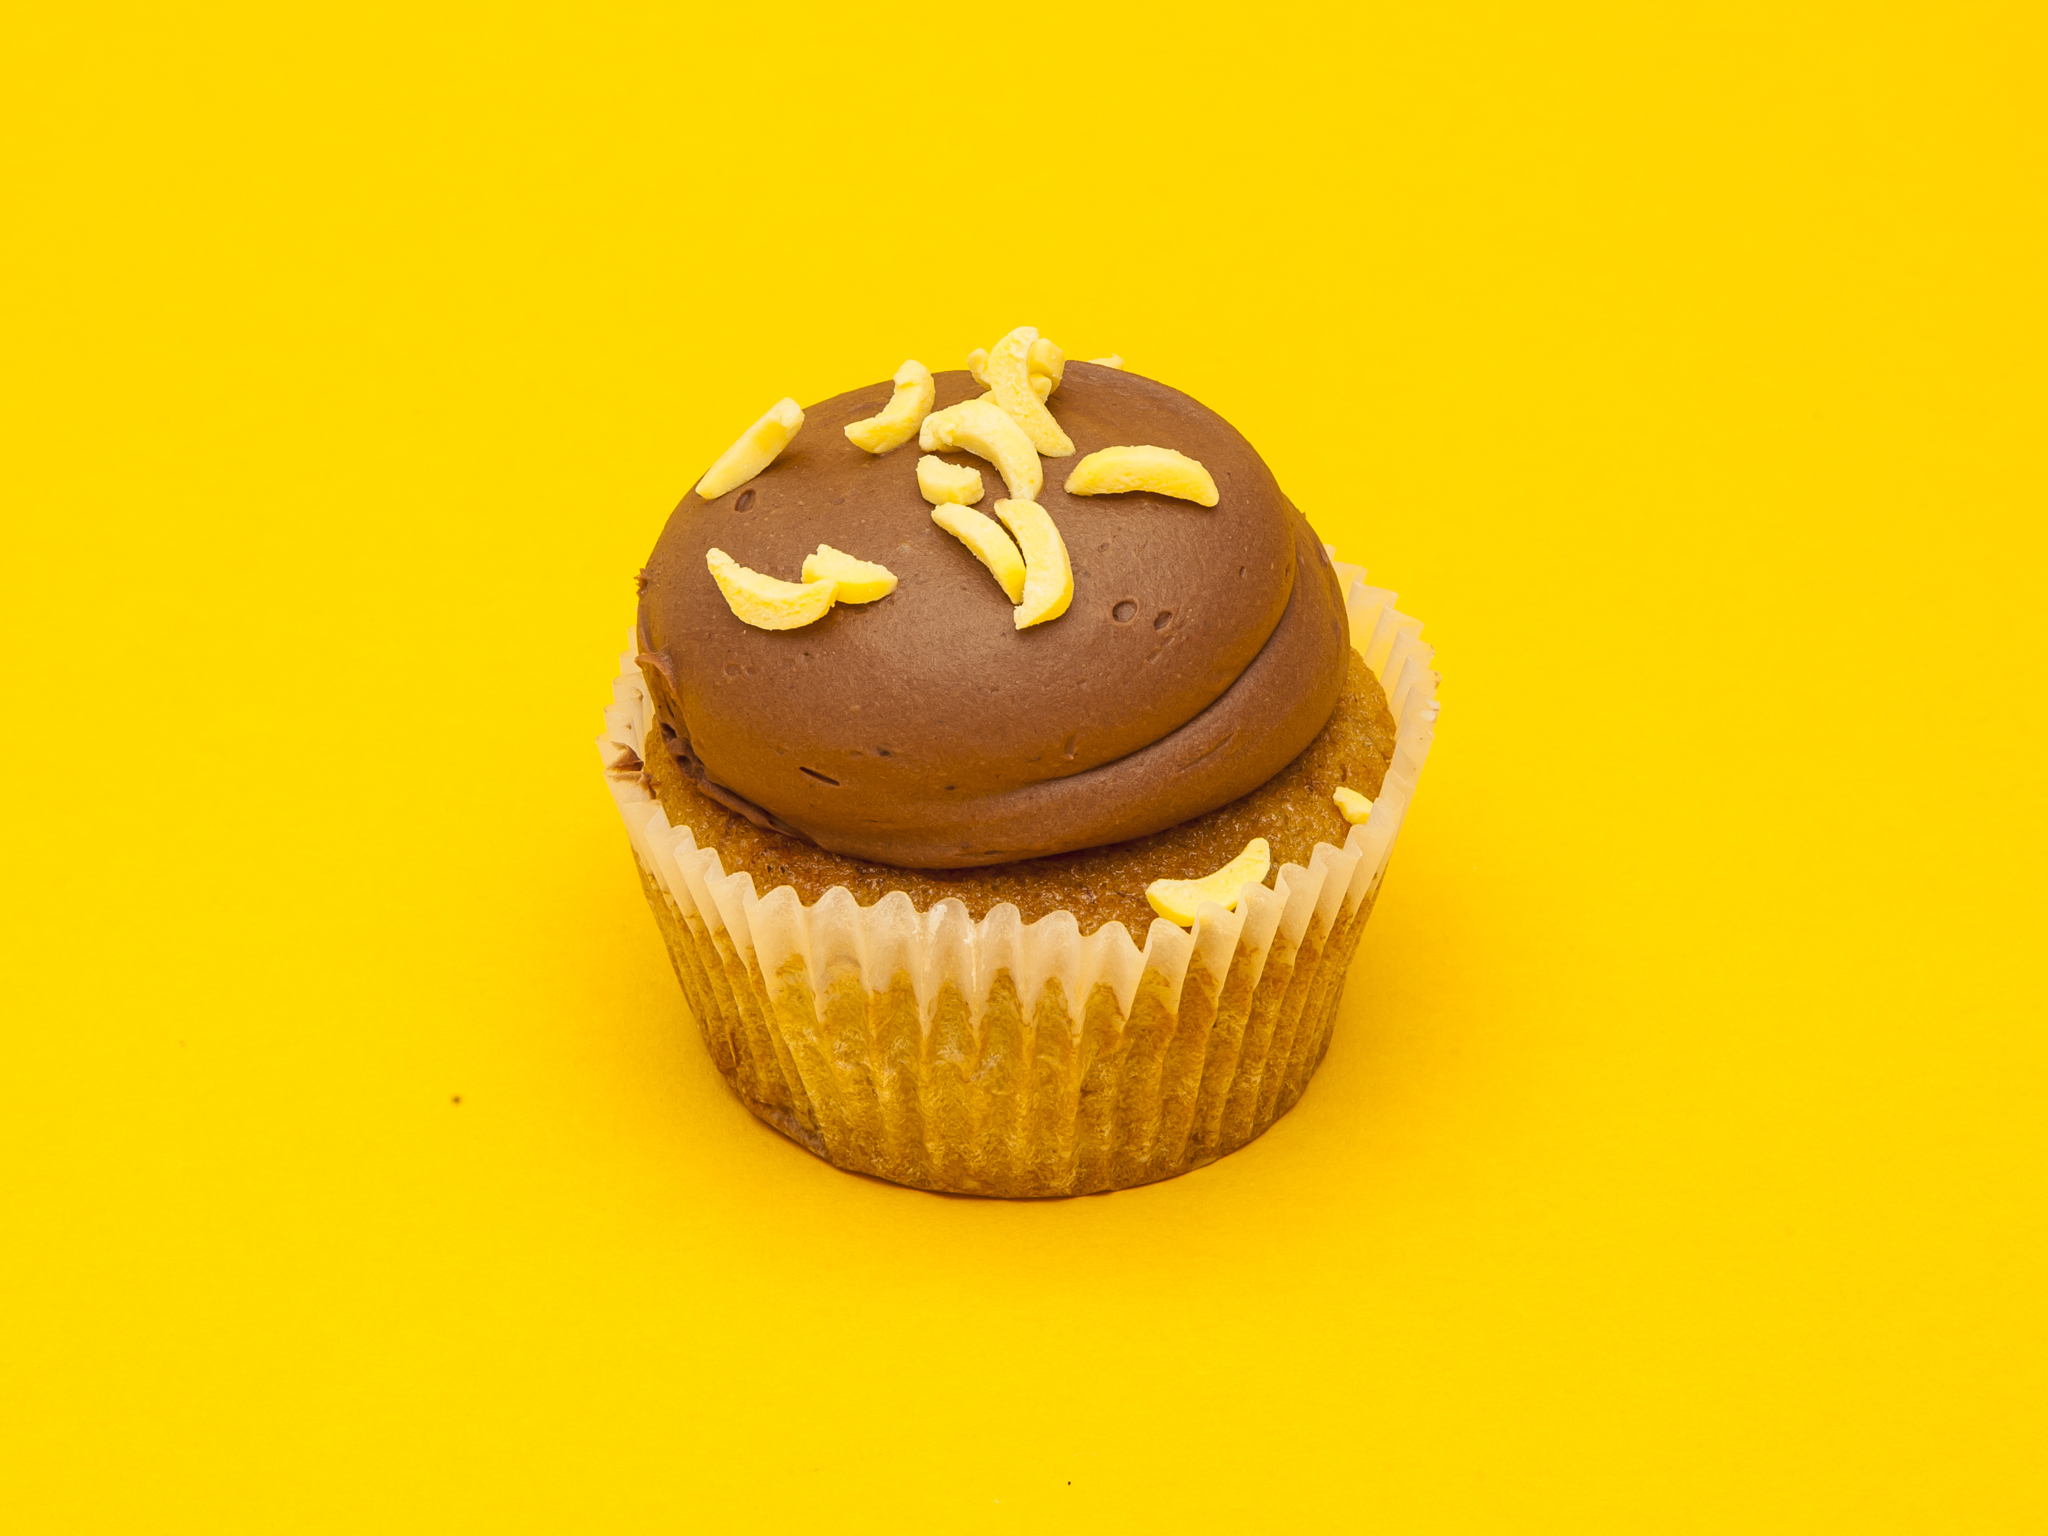 Banana & chocolate cupcake at Crumbs & Doilies